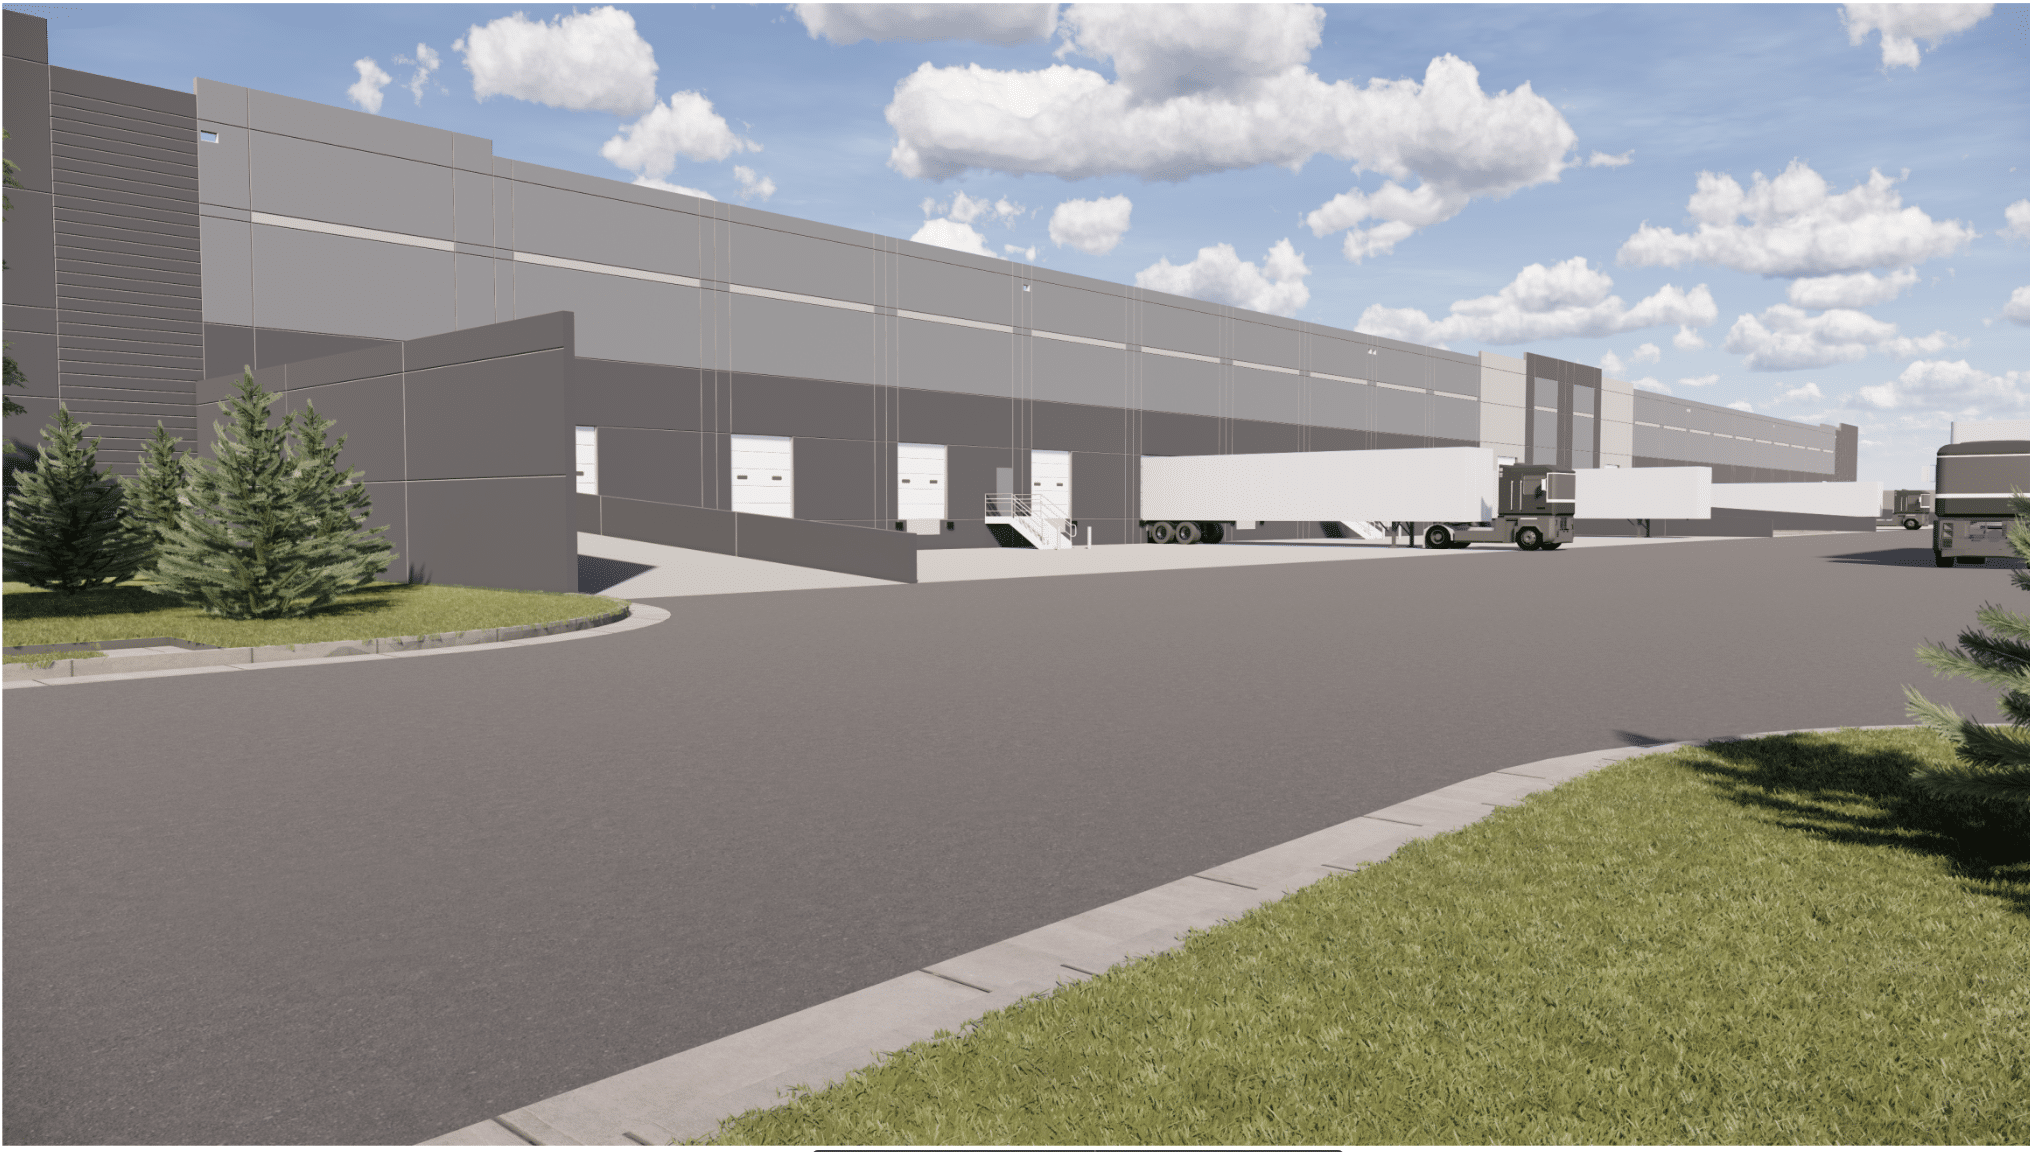 Baseline industrial buildings 3 and 4 Project Photo